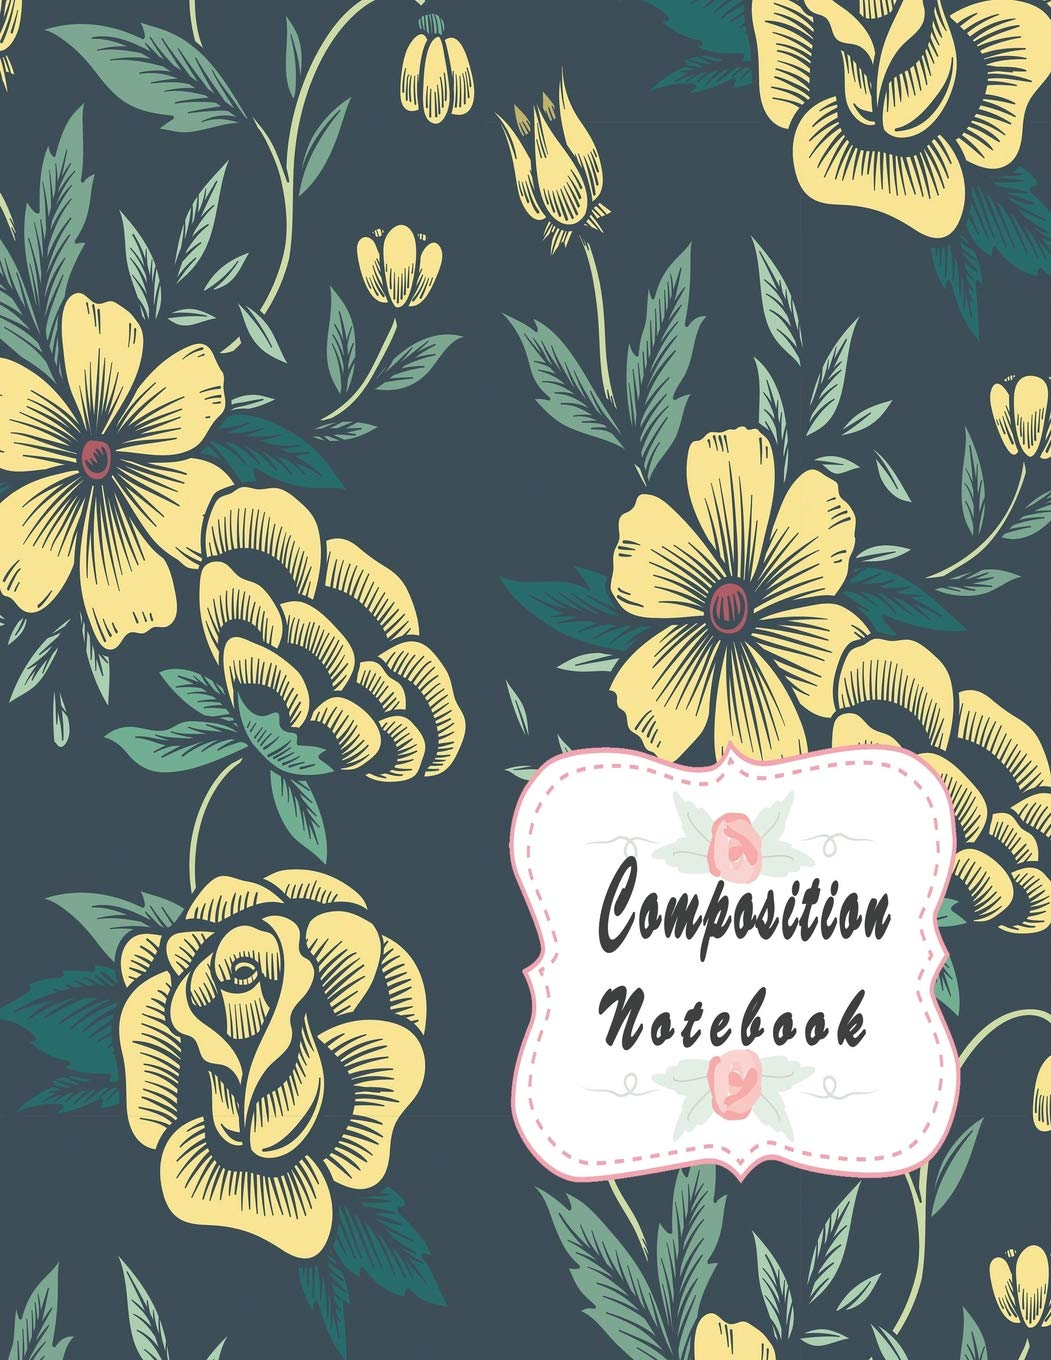 Composition Notebook Yellow Vintage Floral Background Pattern